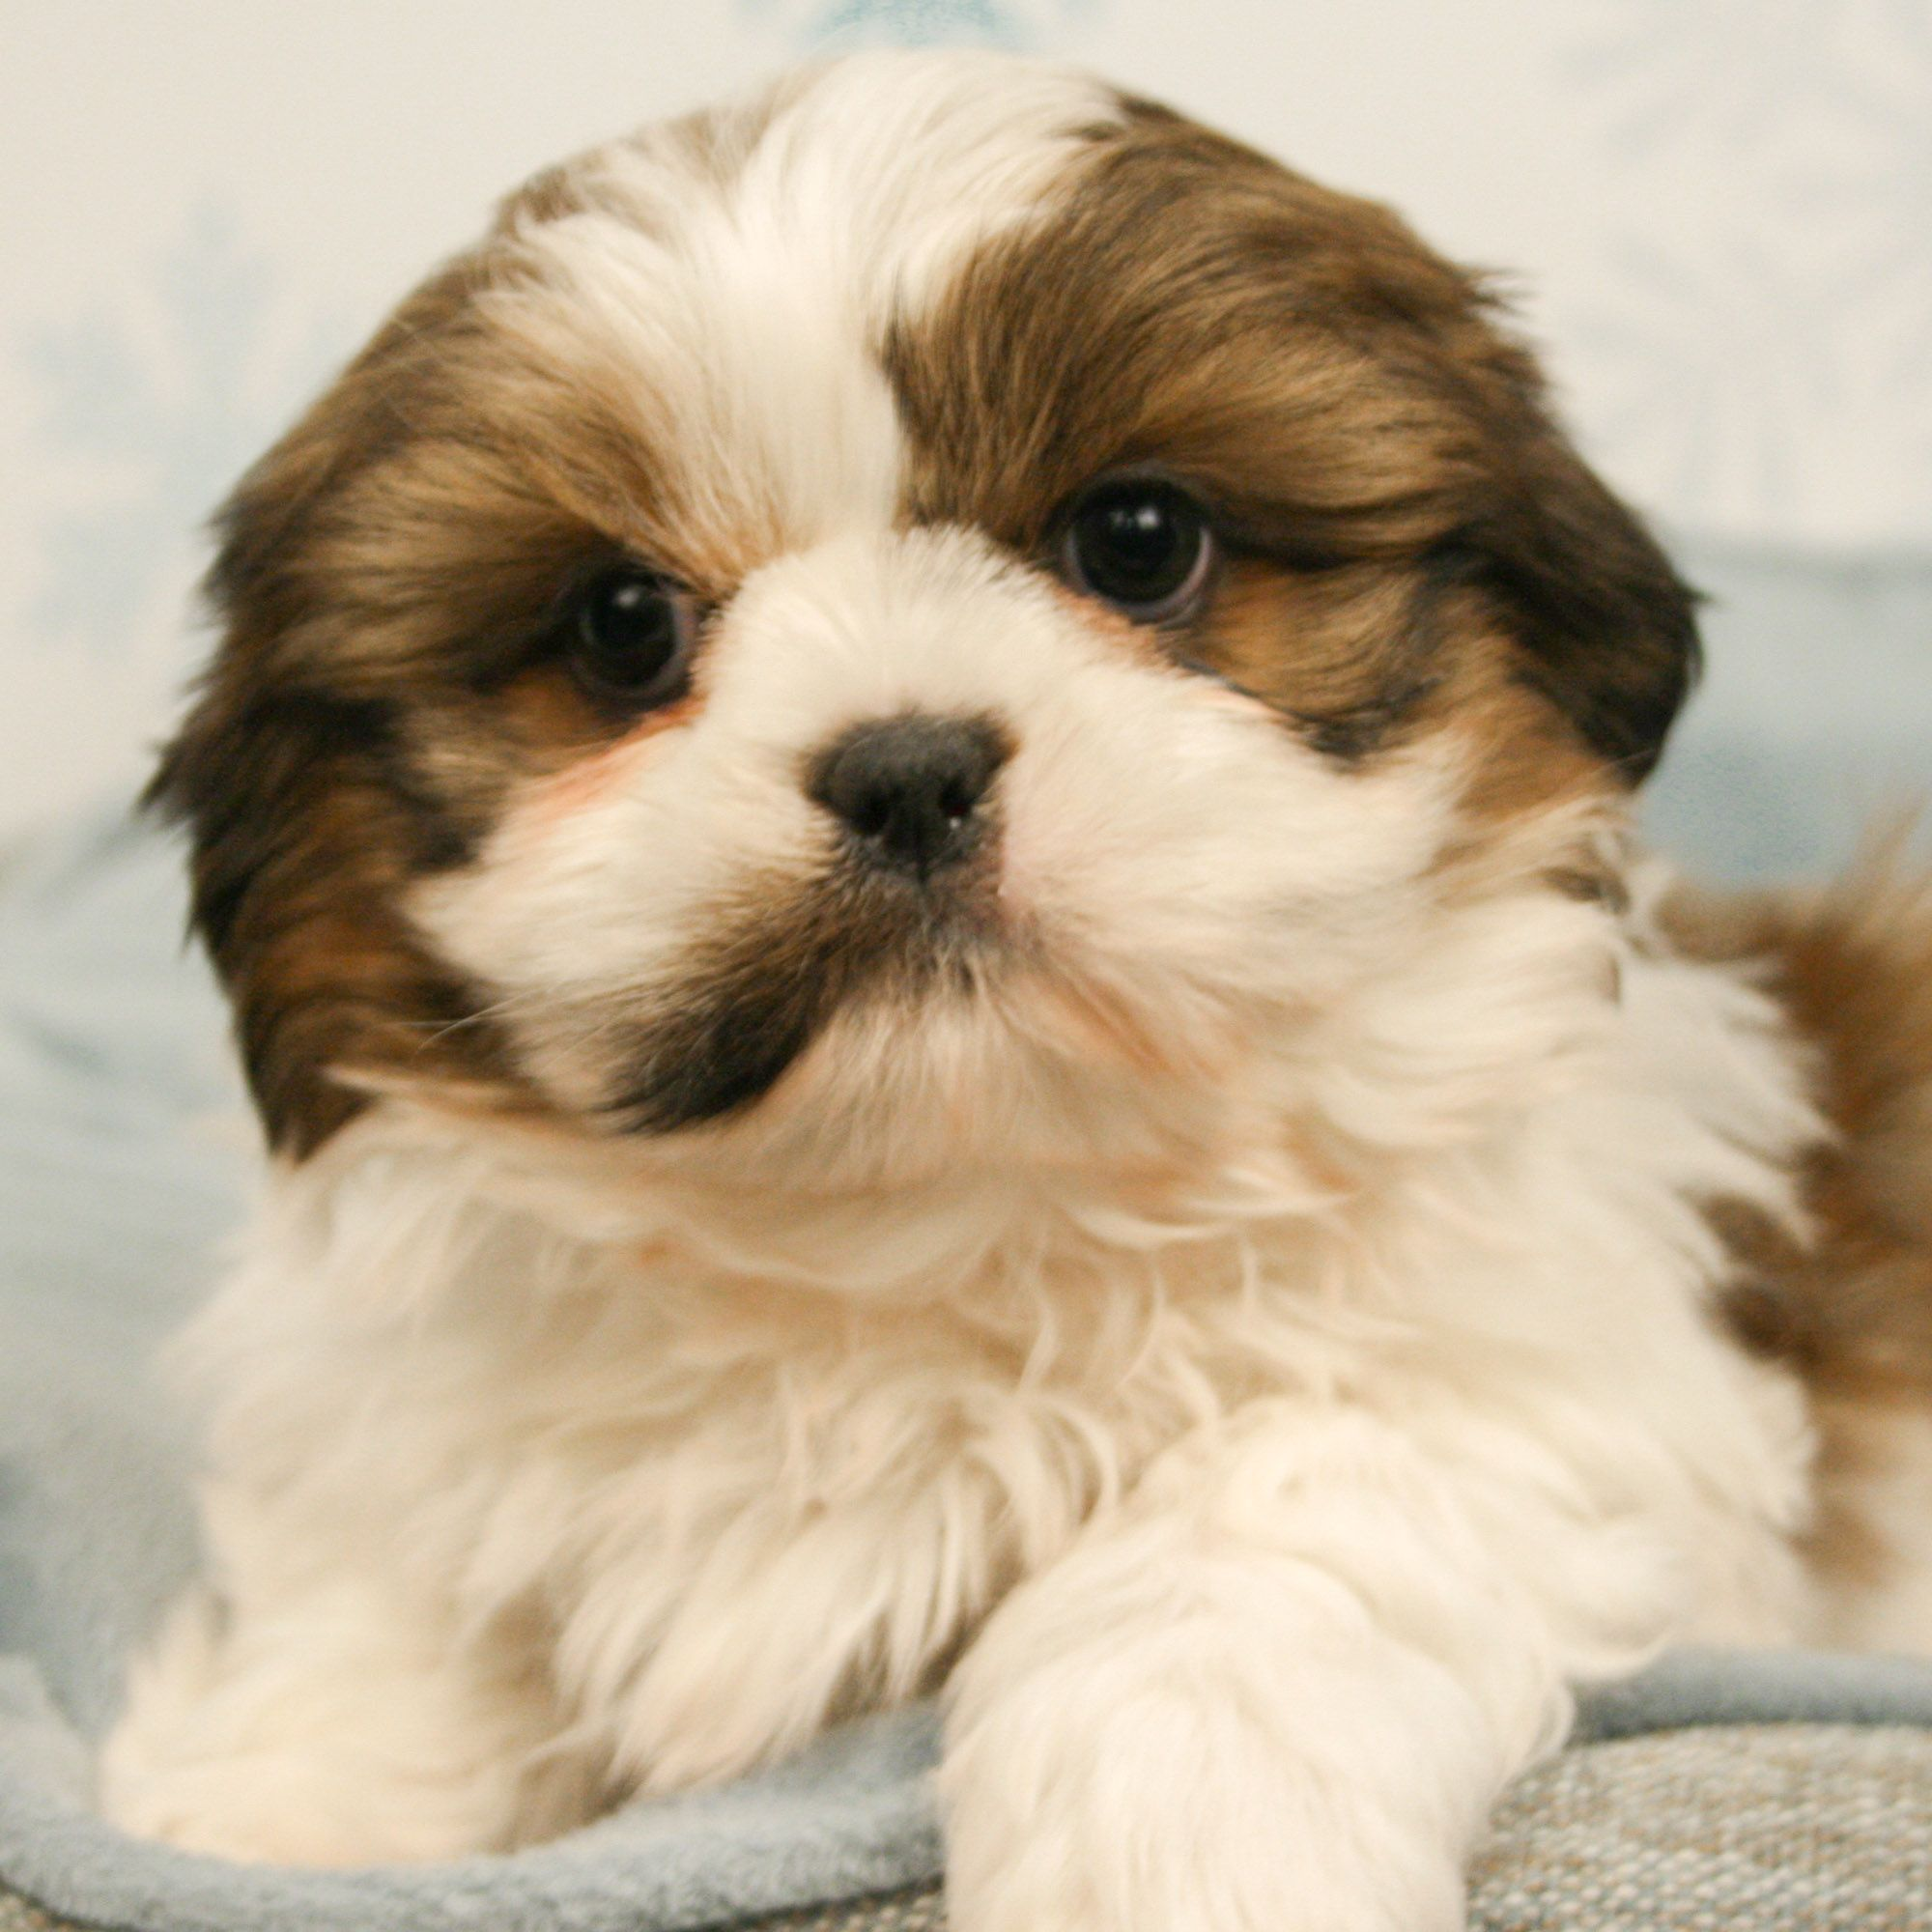 Available Puppies For Sale Puppies Animals Pets